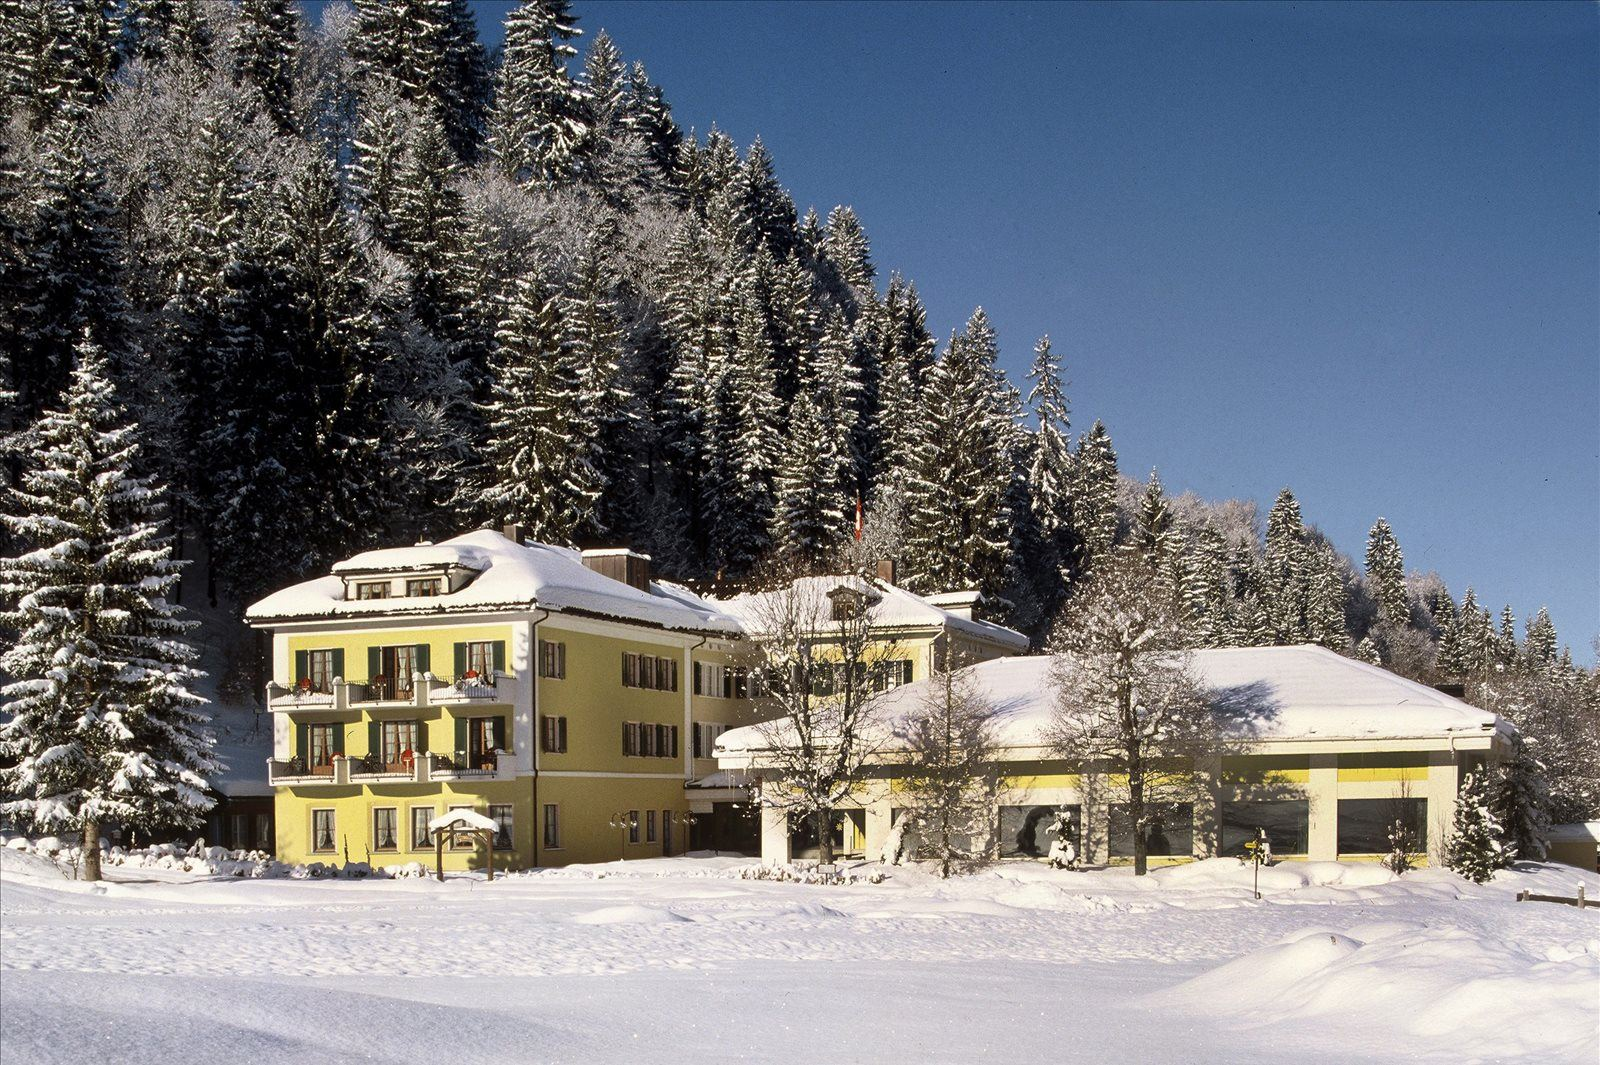 Hotel Bad Serneus - Klosters